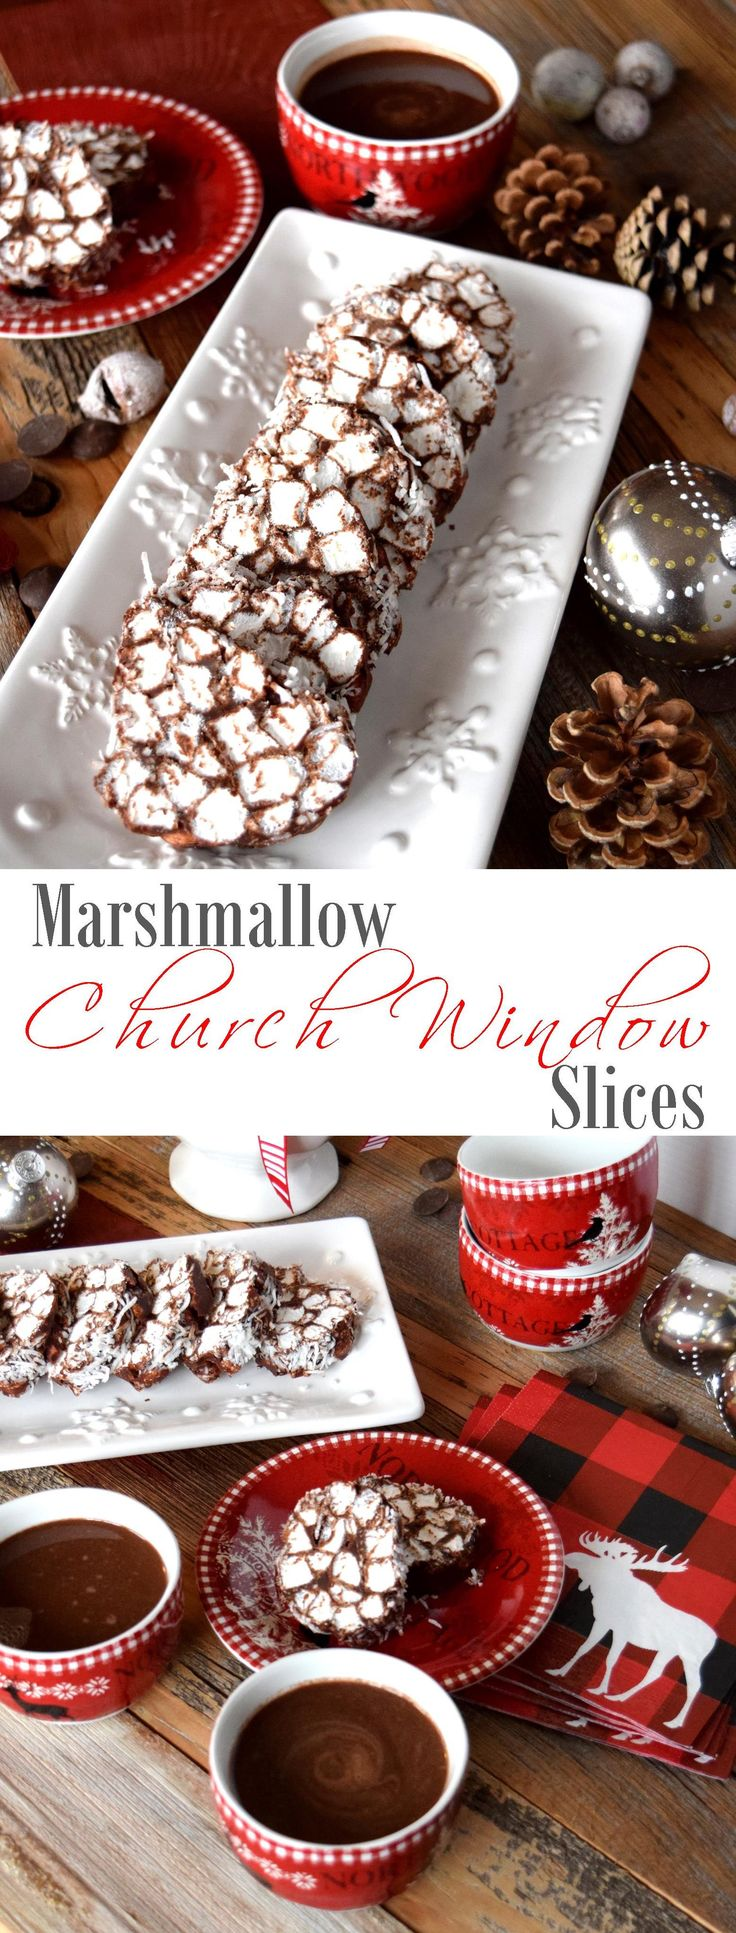 Sit back and let me tell you about the easiest recipe you can possibly make to serve your guests this Christmas. These little slices of chocolatey, marshmallowy goodness are extremely simple, but looks extremely impressive! The Christmas season is busy enough as it is, and we all like to show off to our guests with …